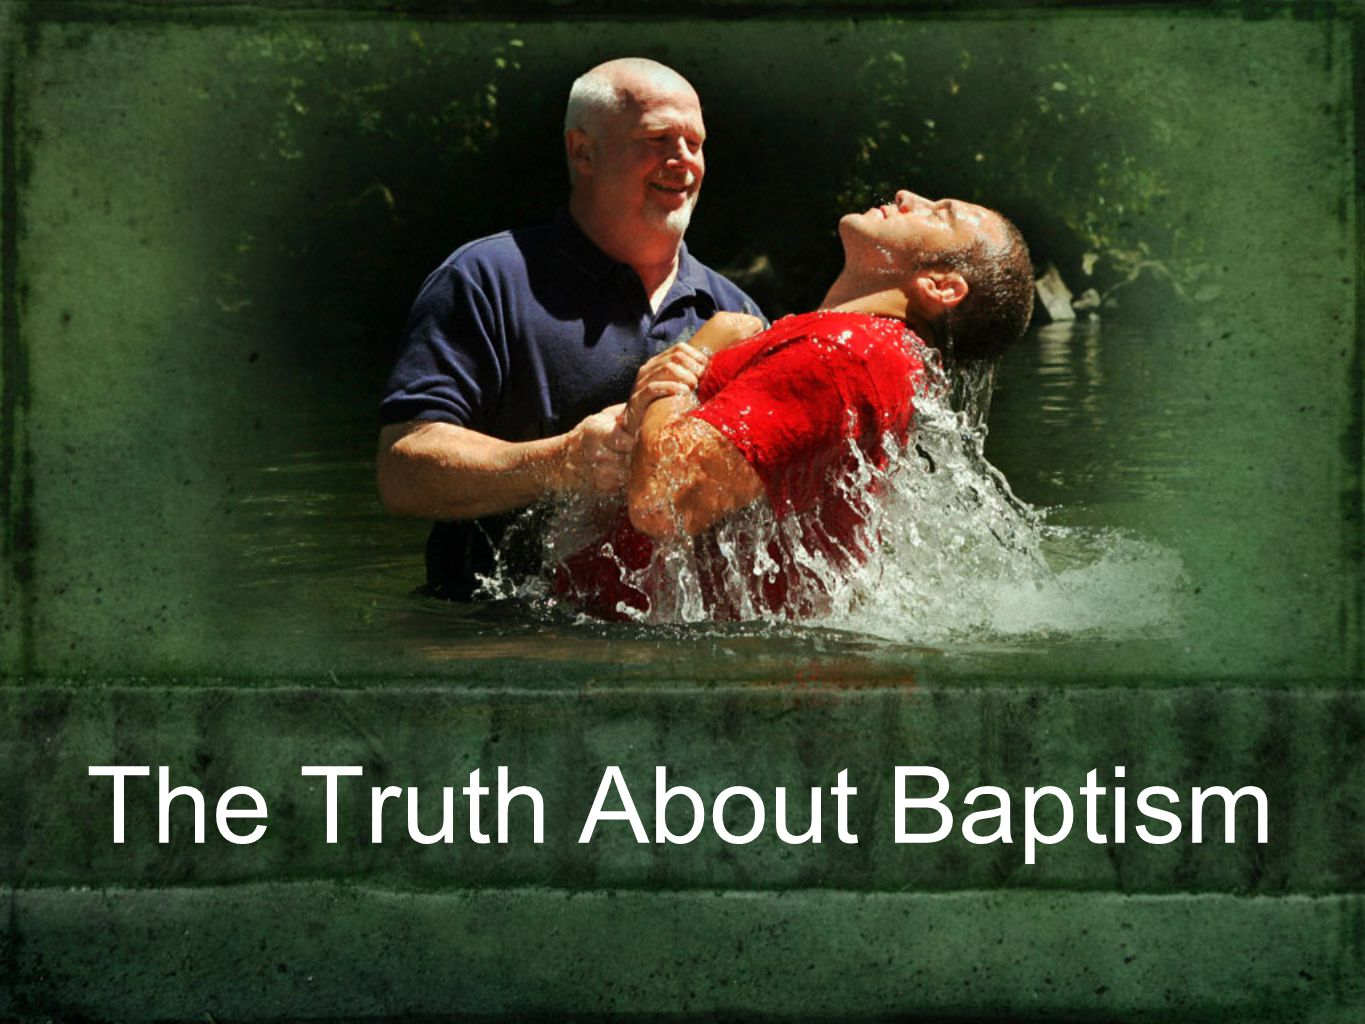 The Truth About Baptism